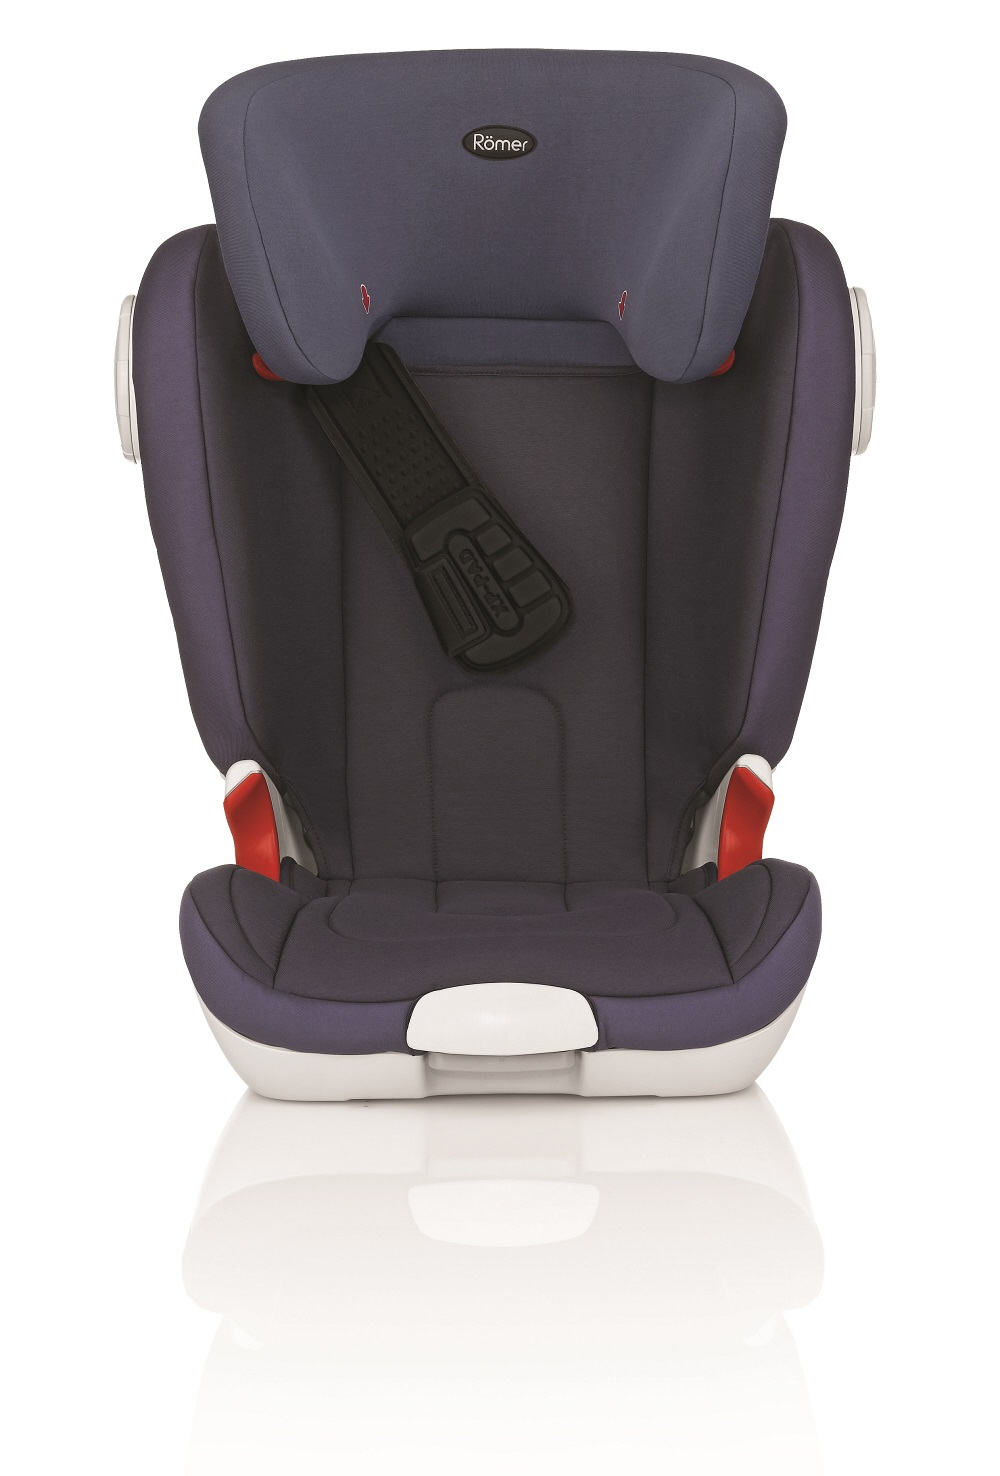 britax r mer child car seat kidfix sp sict. Black Bedroom Furniture Sets. Home Design Ideas